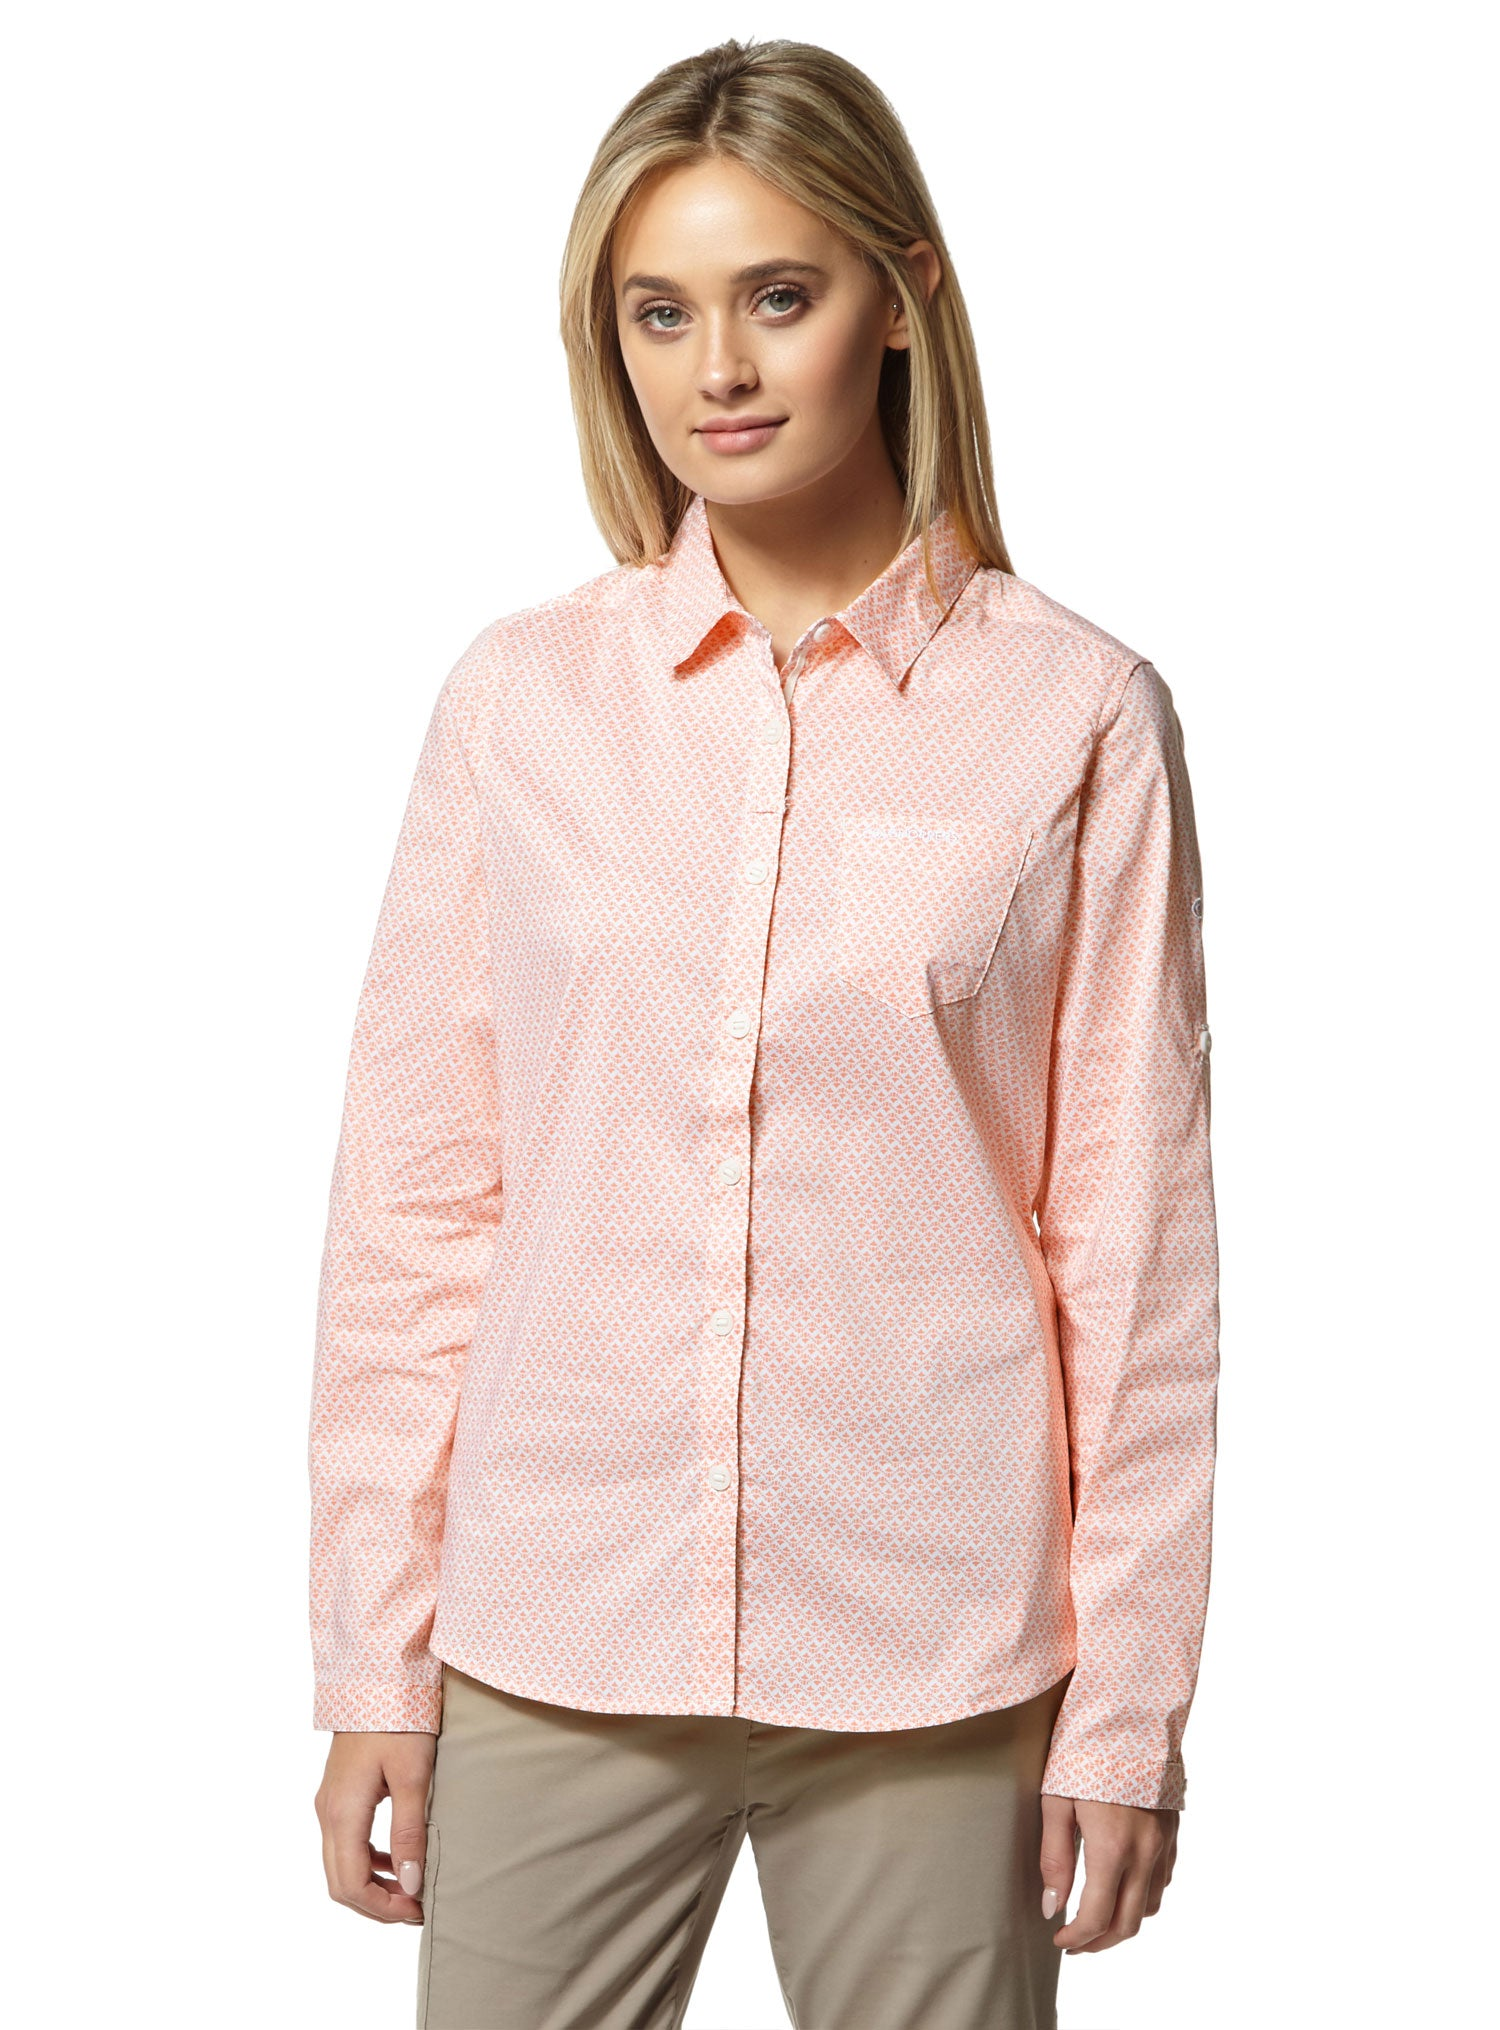 Ladies Verona Shirt by Craghoppers in rosette